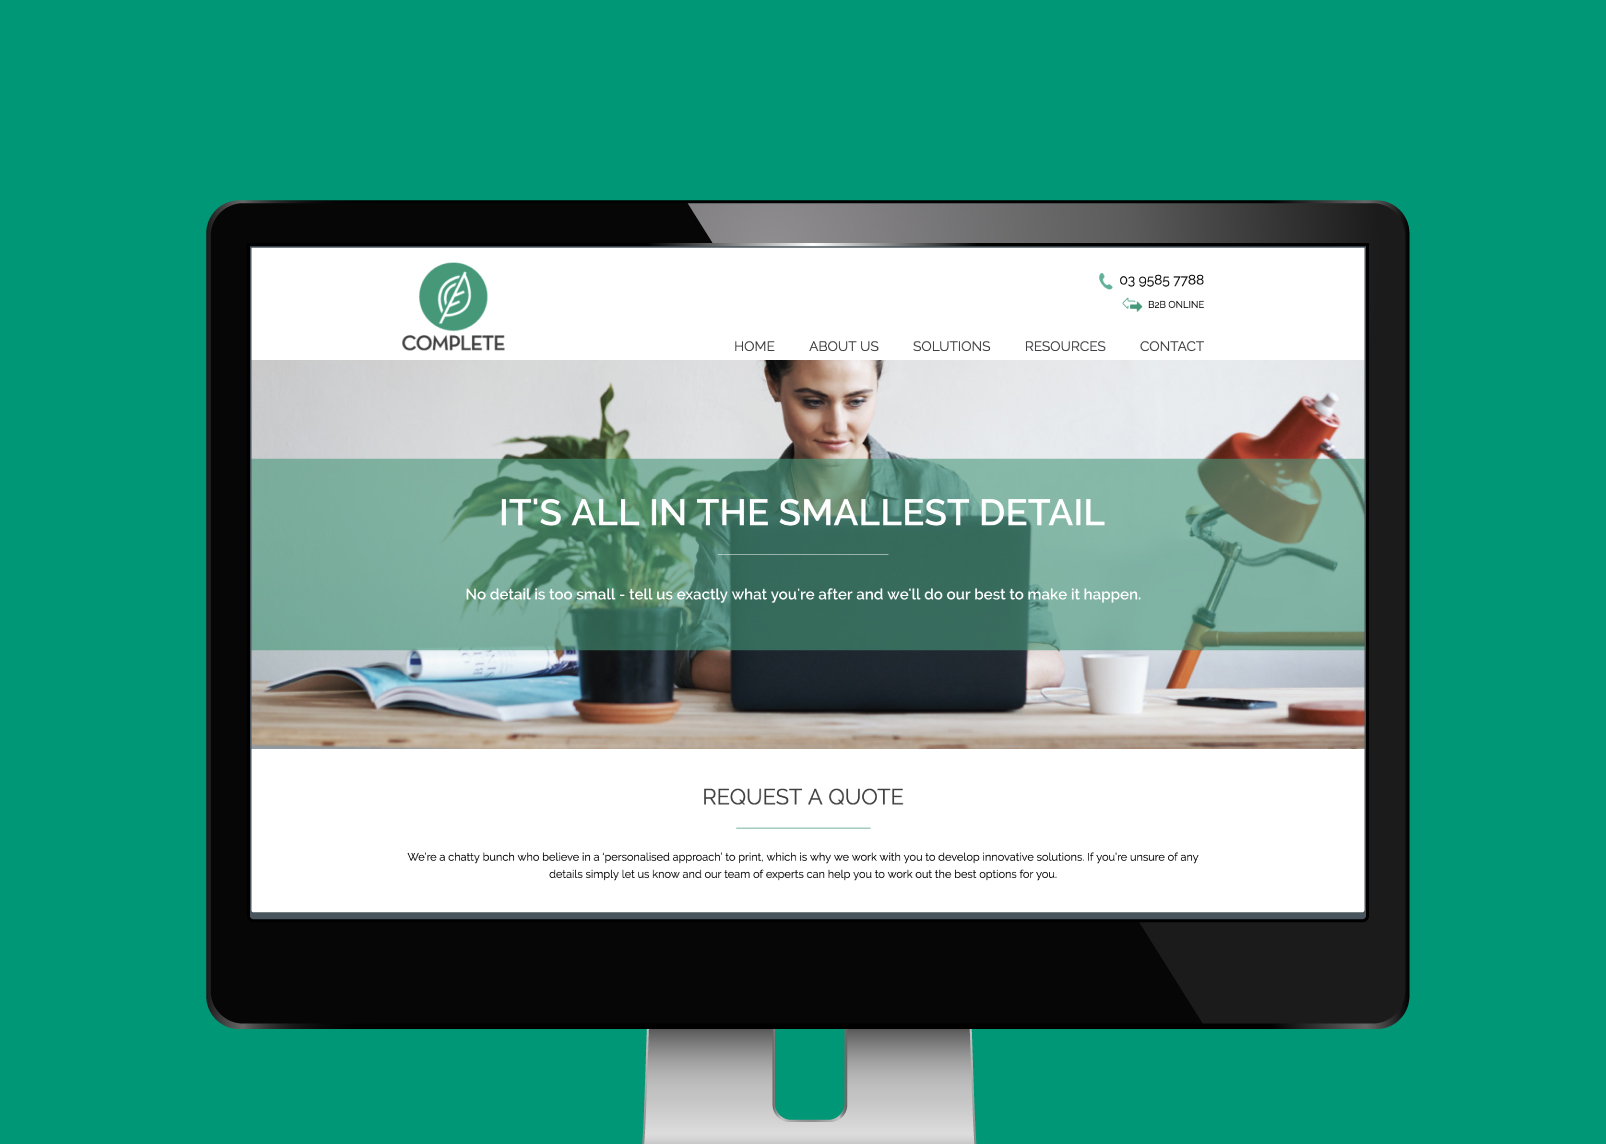 Content was created and photography sourced by Gloss Design for the Complete website.